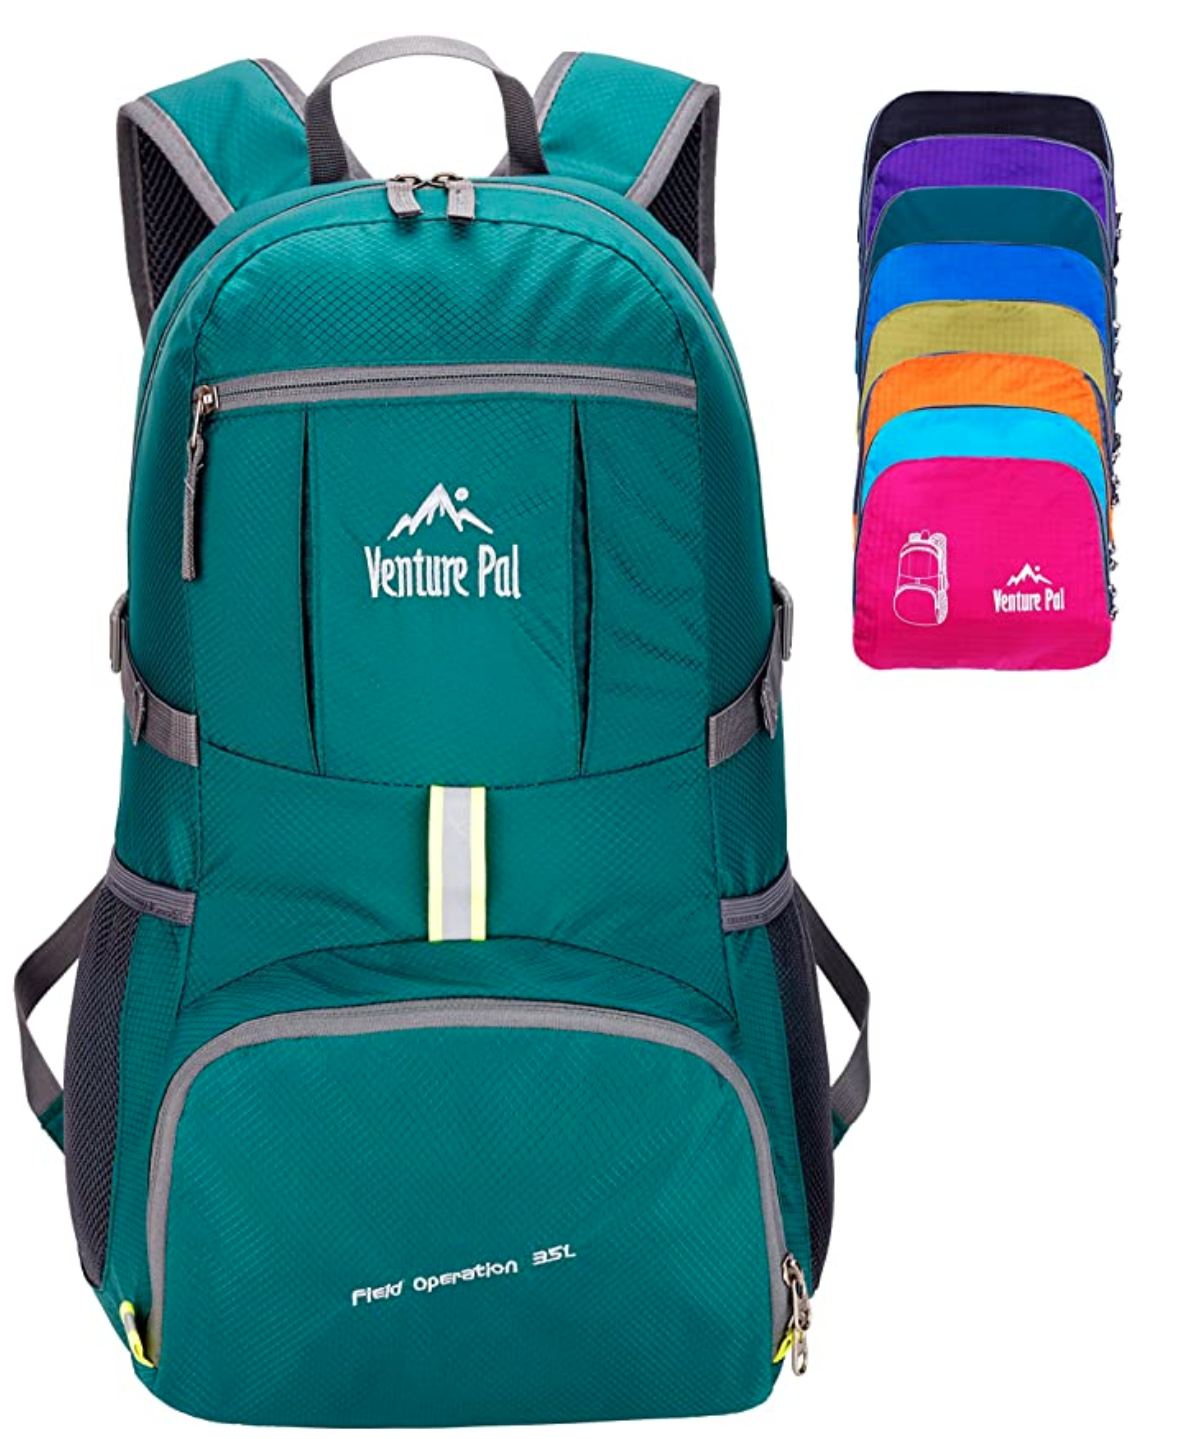 A green backpack and various colour options next to it.